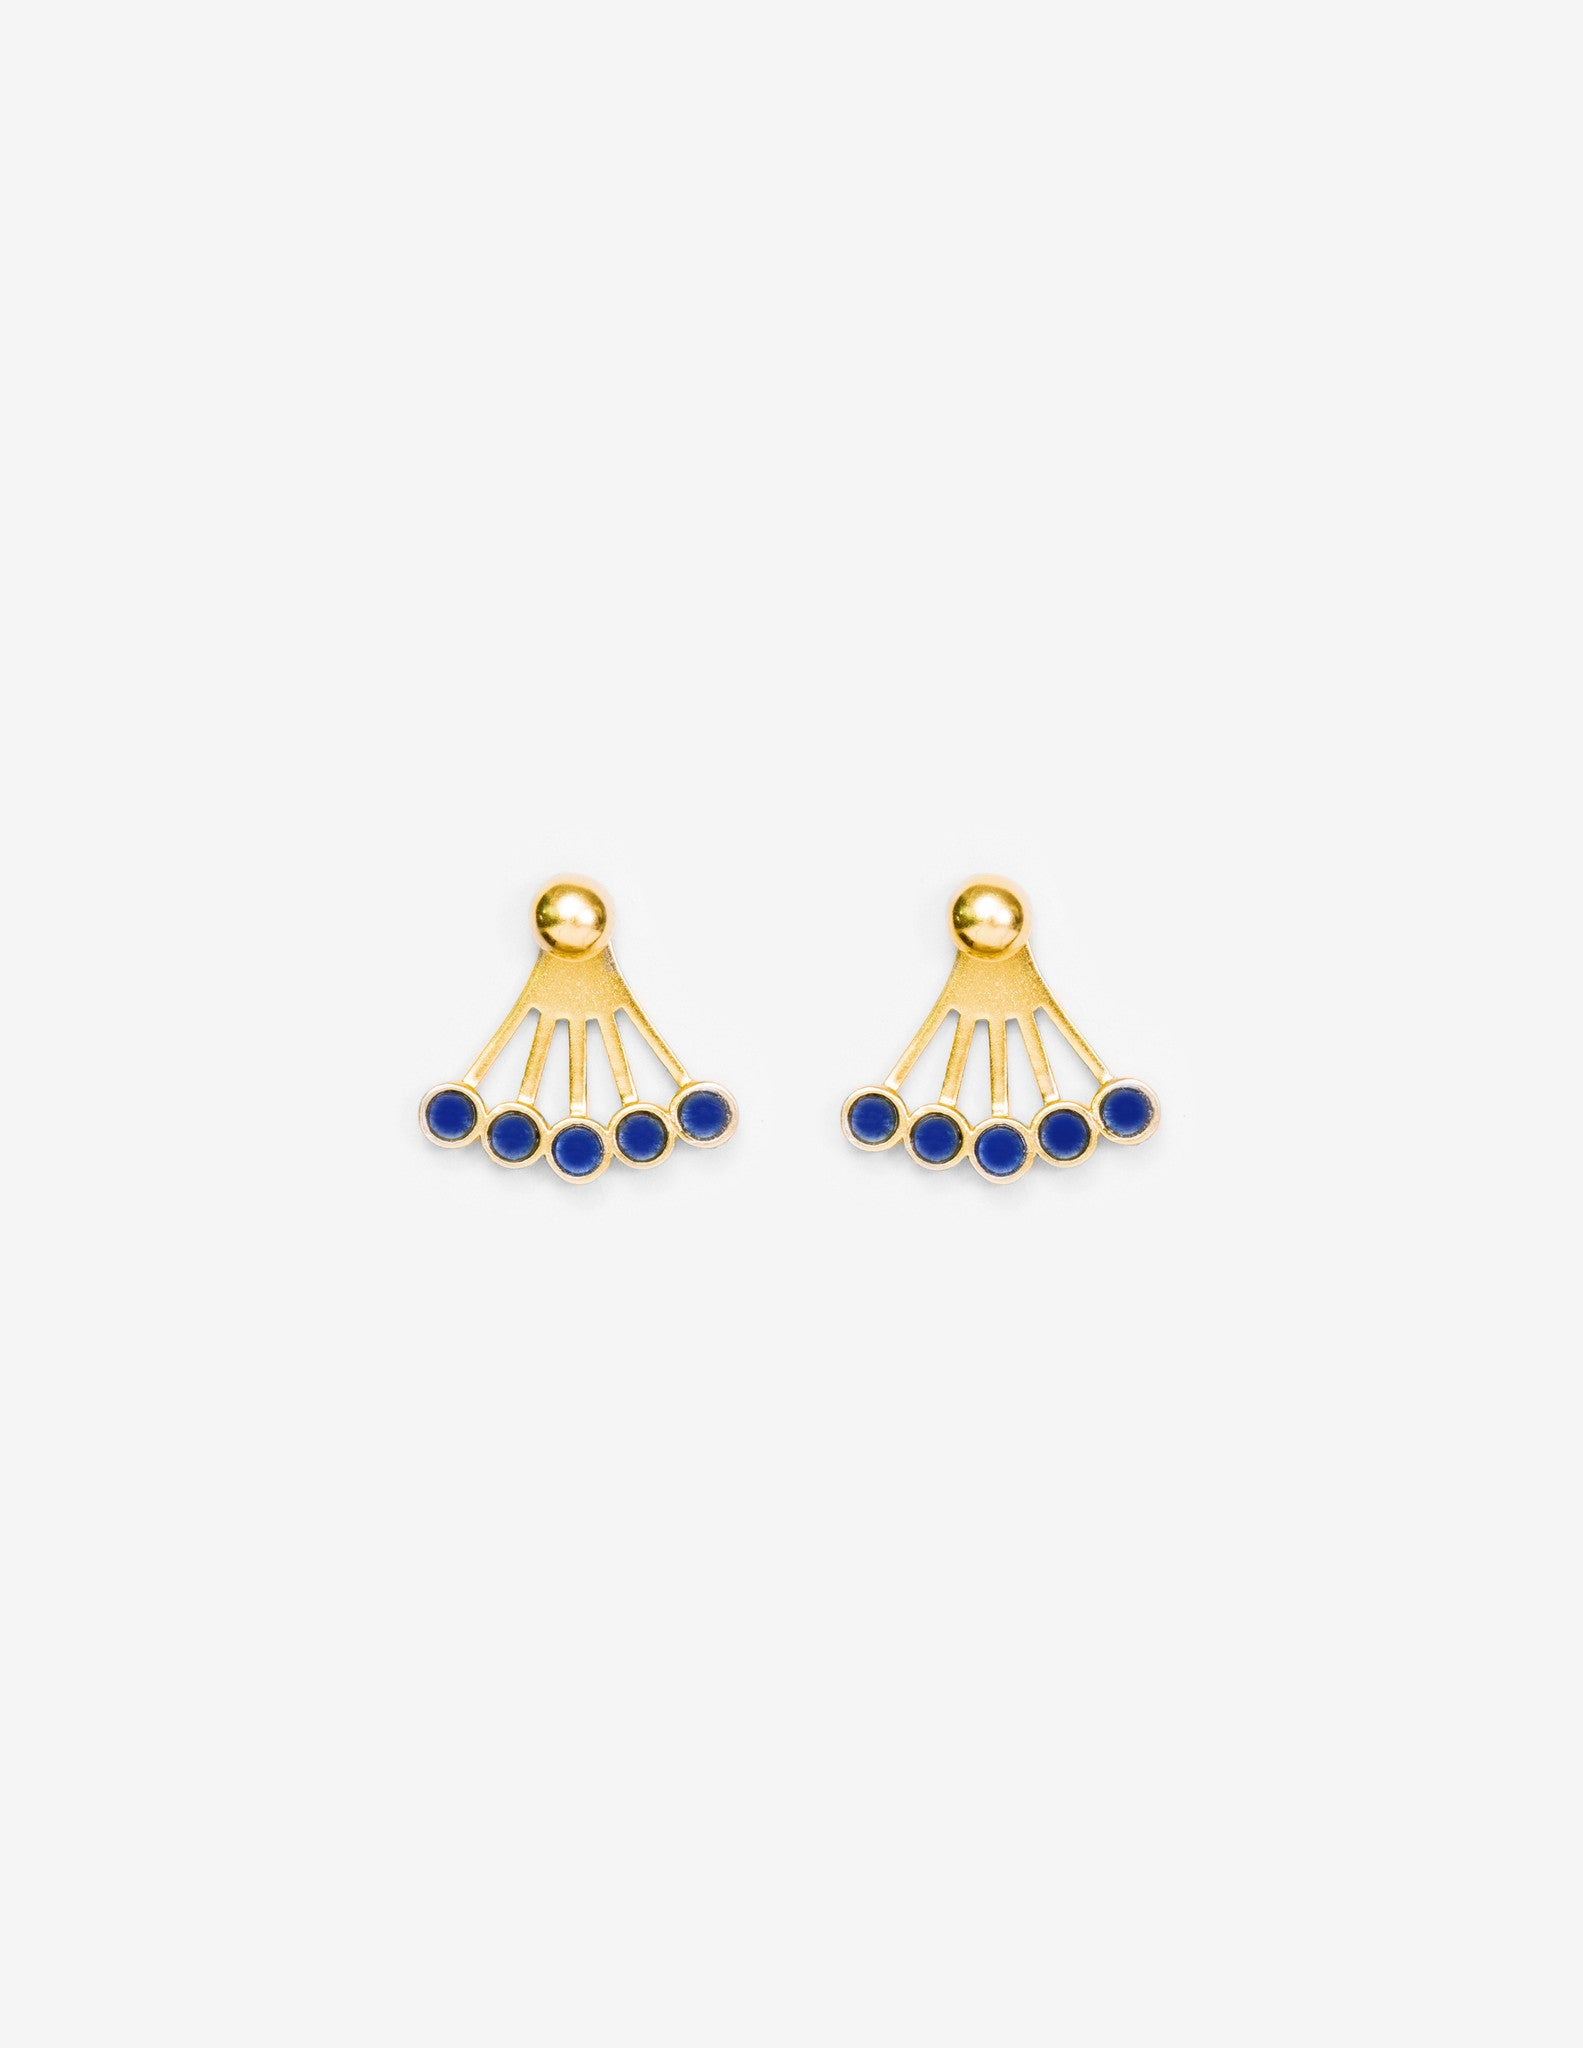 Skandaza lapis Earrings